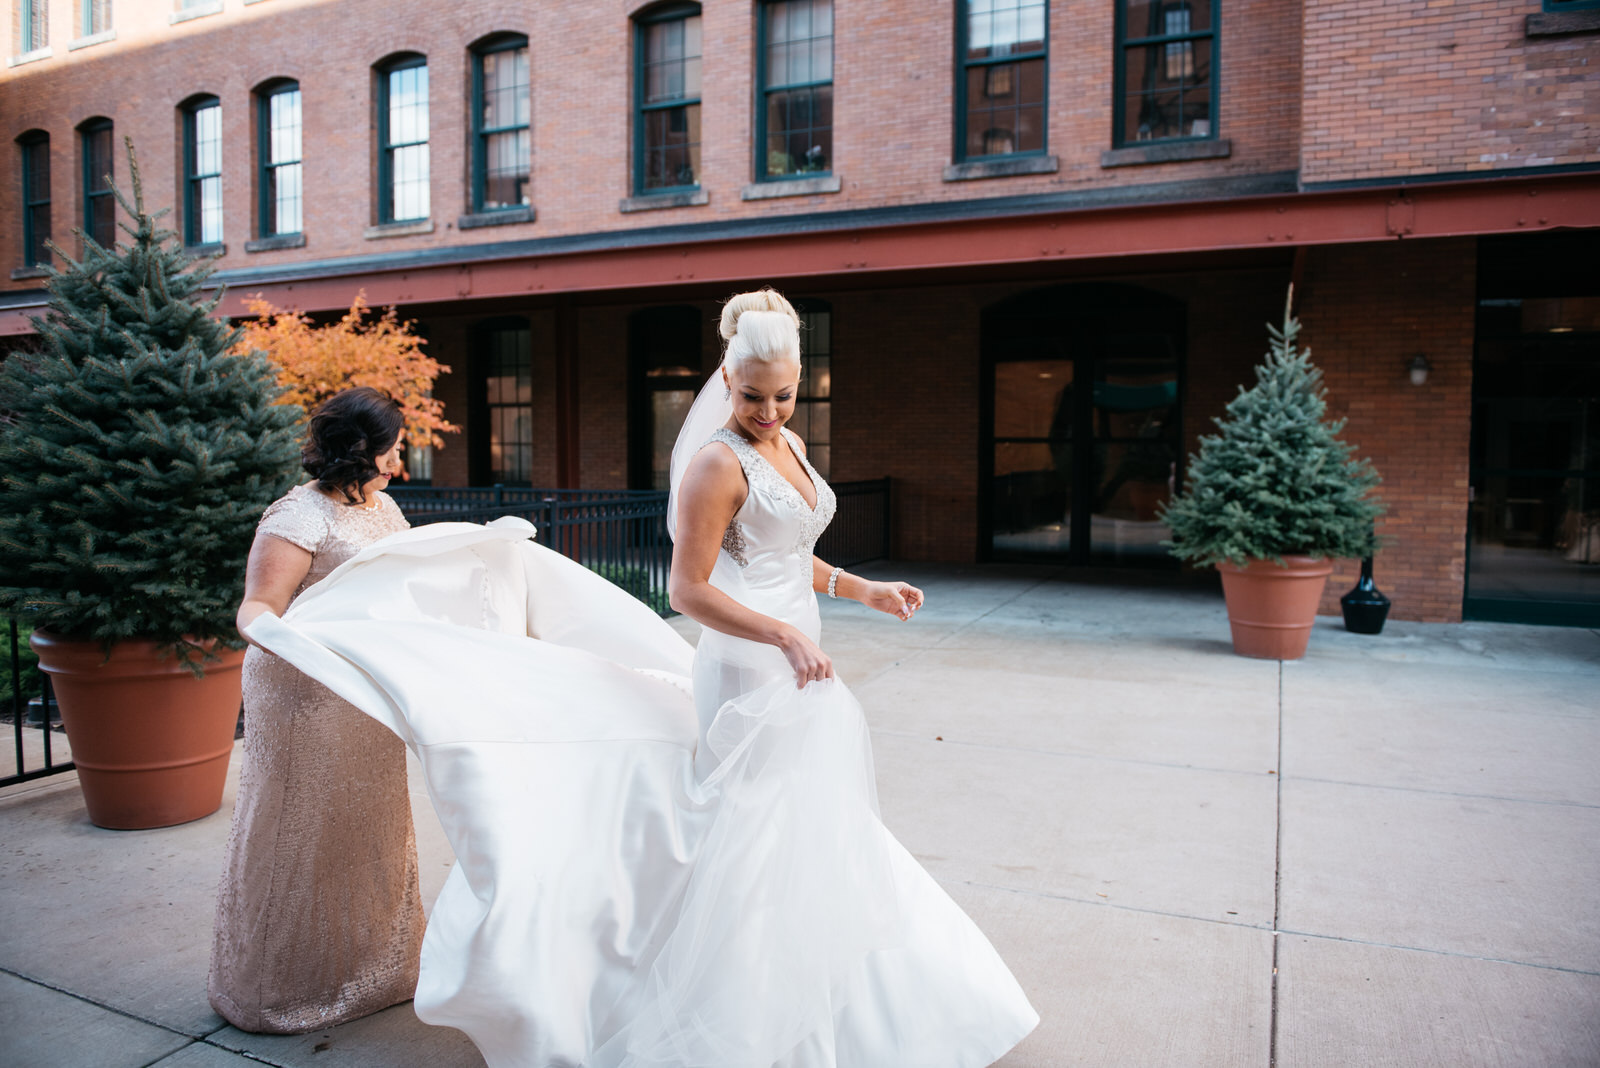 hilton_garden_inn_southpointe_pittsburgh_weddings_33.jpg